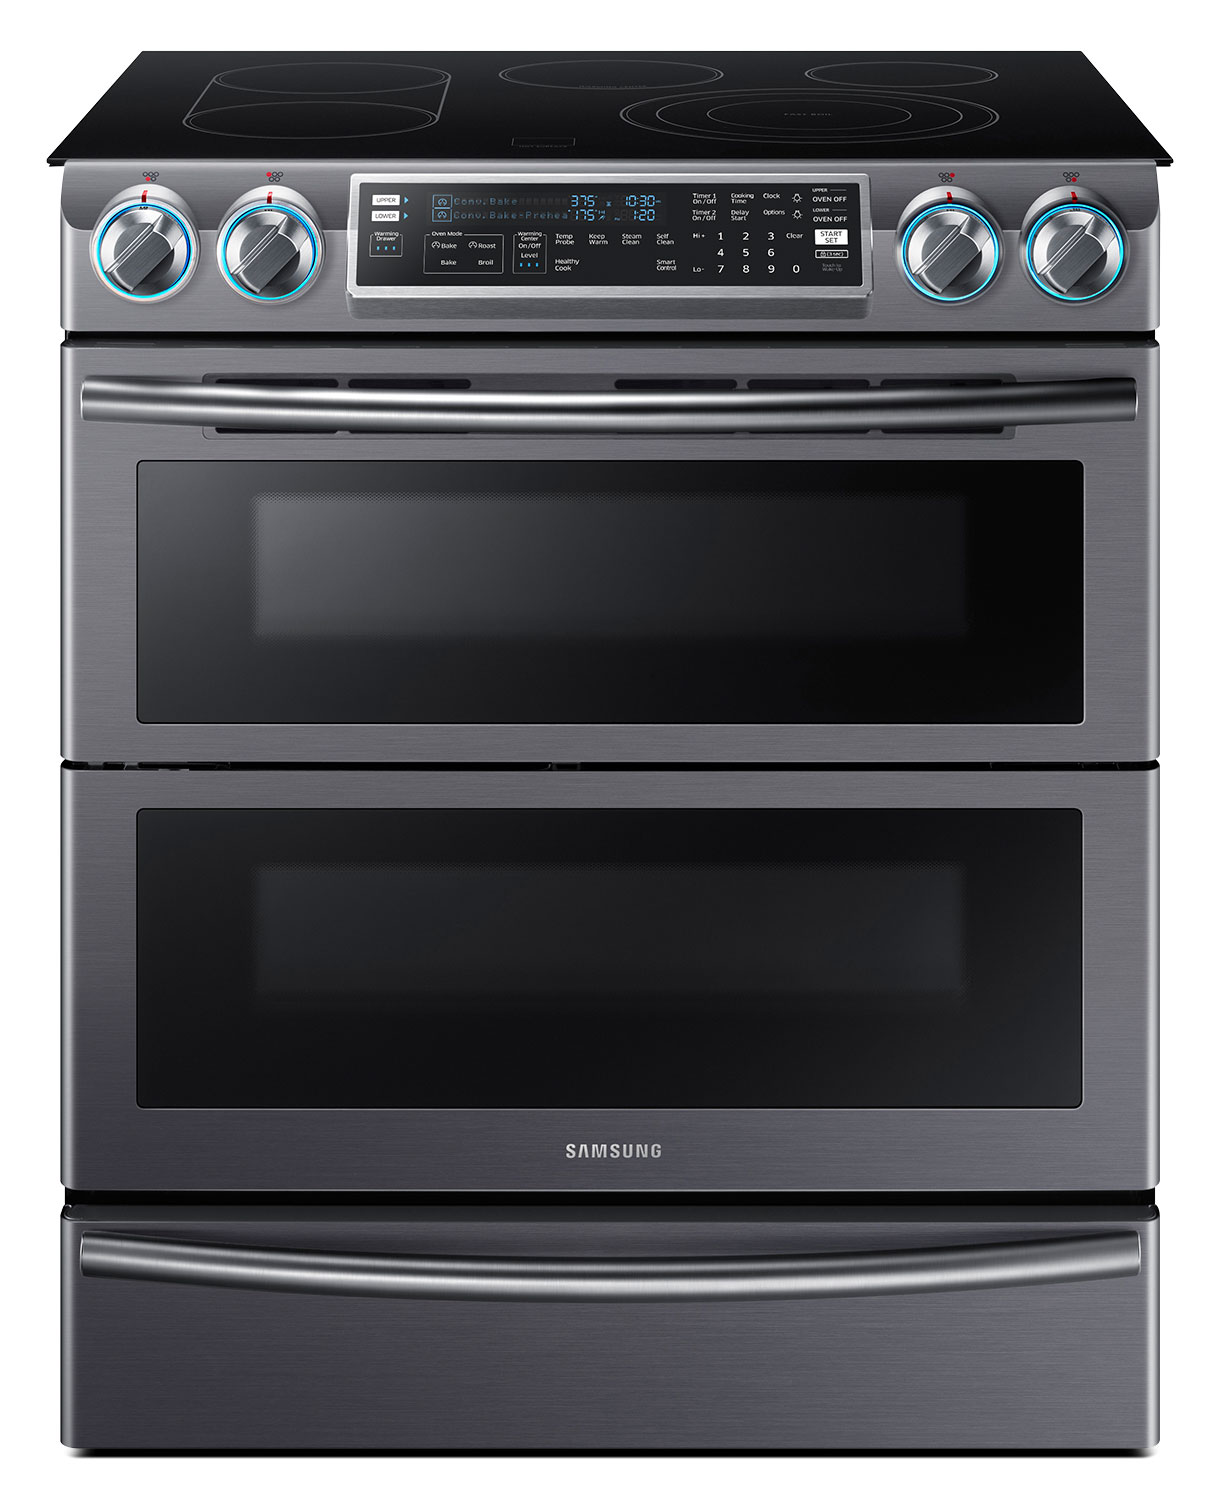 Cooking Products - Samsung 5.8 Cu. Ft. Slide-In Electric Flex Duo™ Range – NE58K9850WG